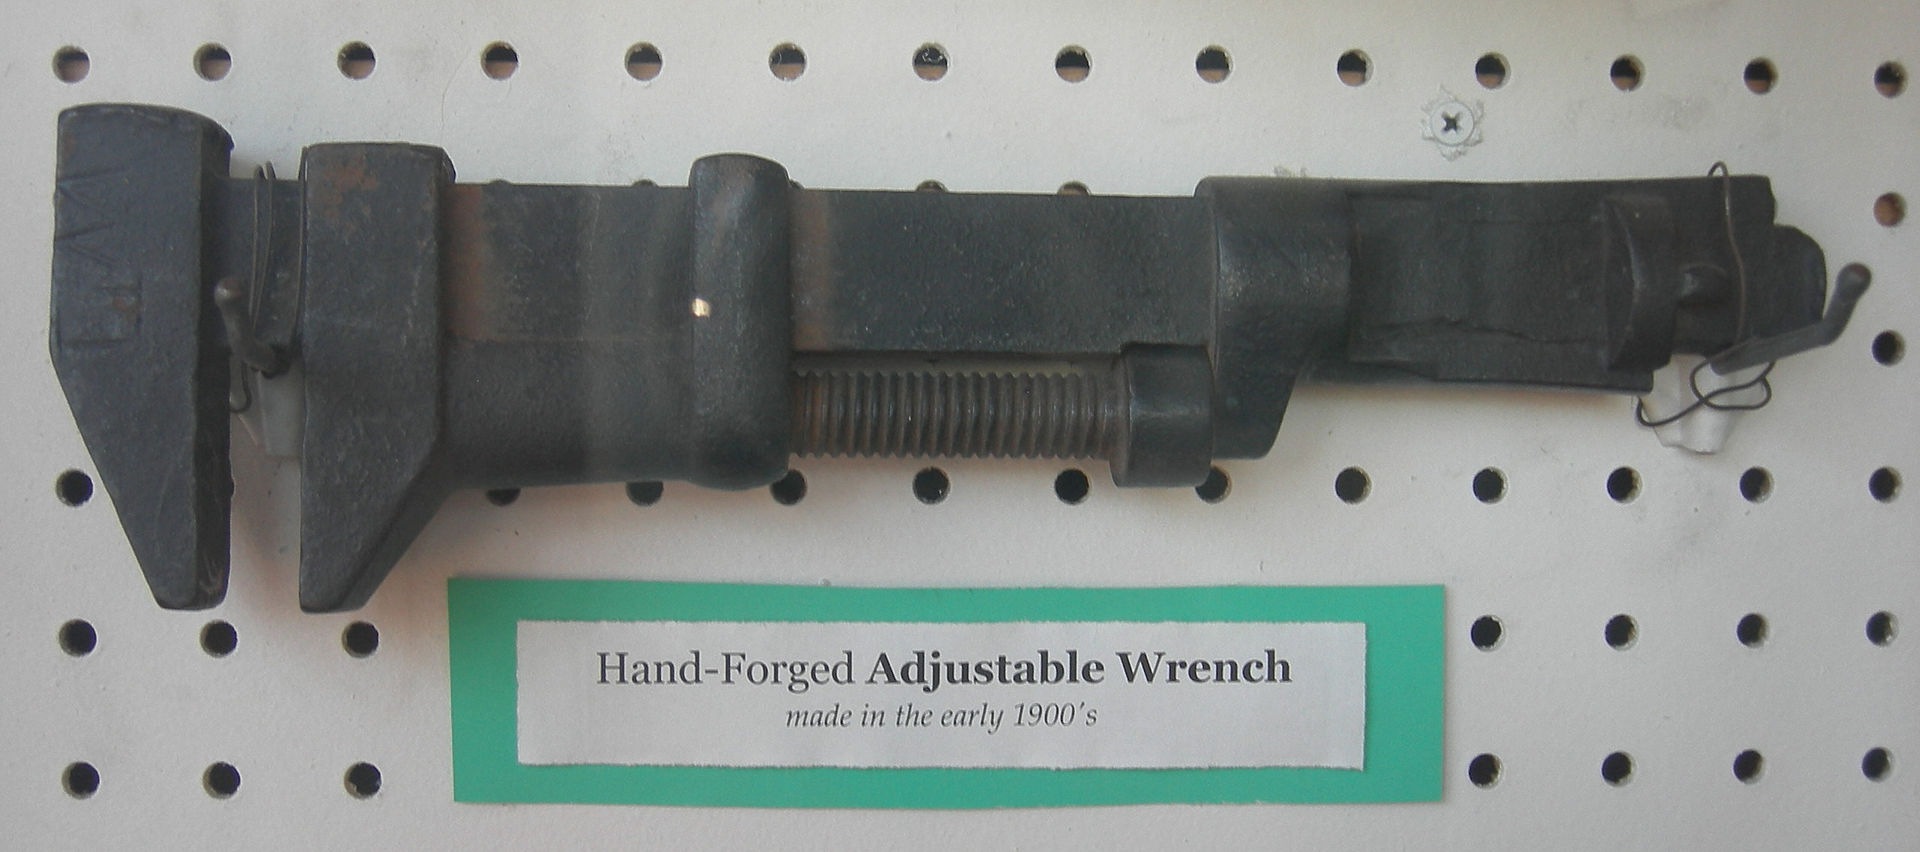 Patent An Idea >> First wrench was patented this day - This Day in Patent ...